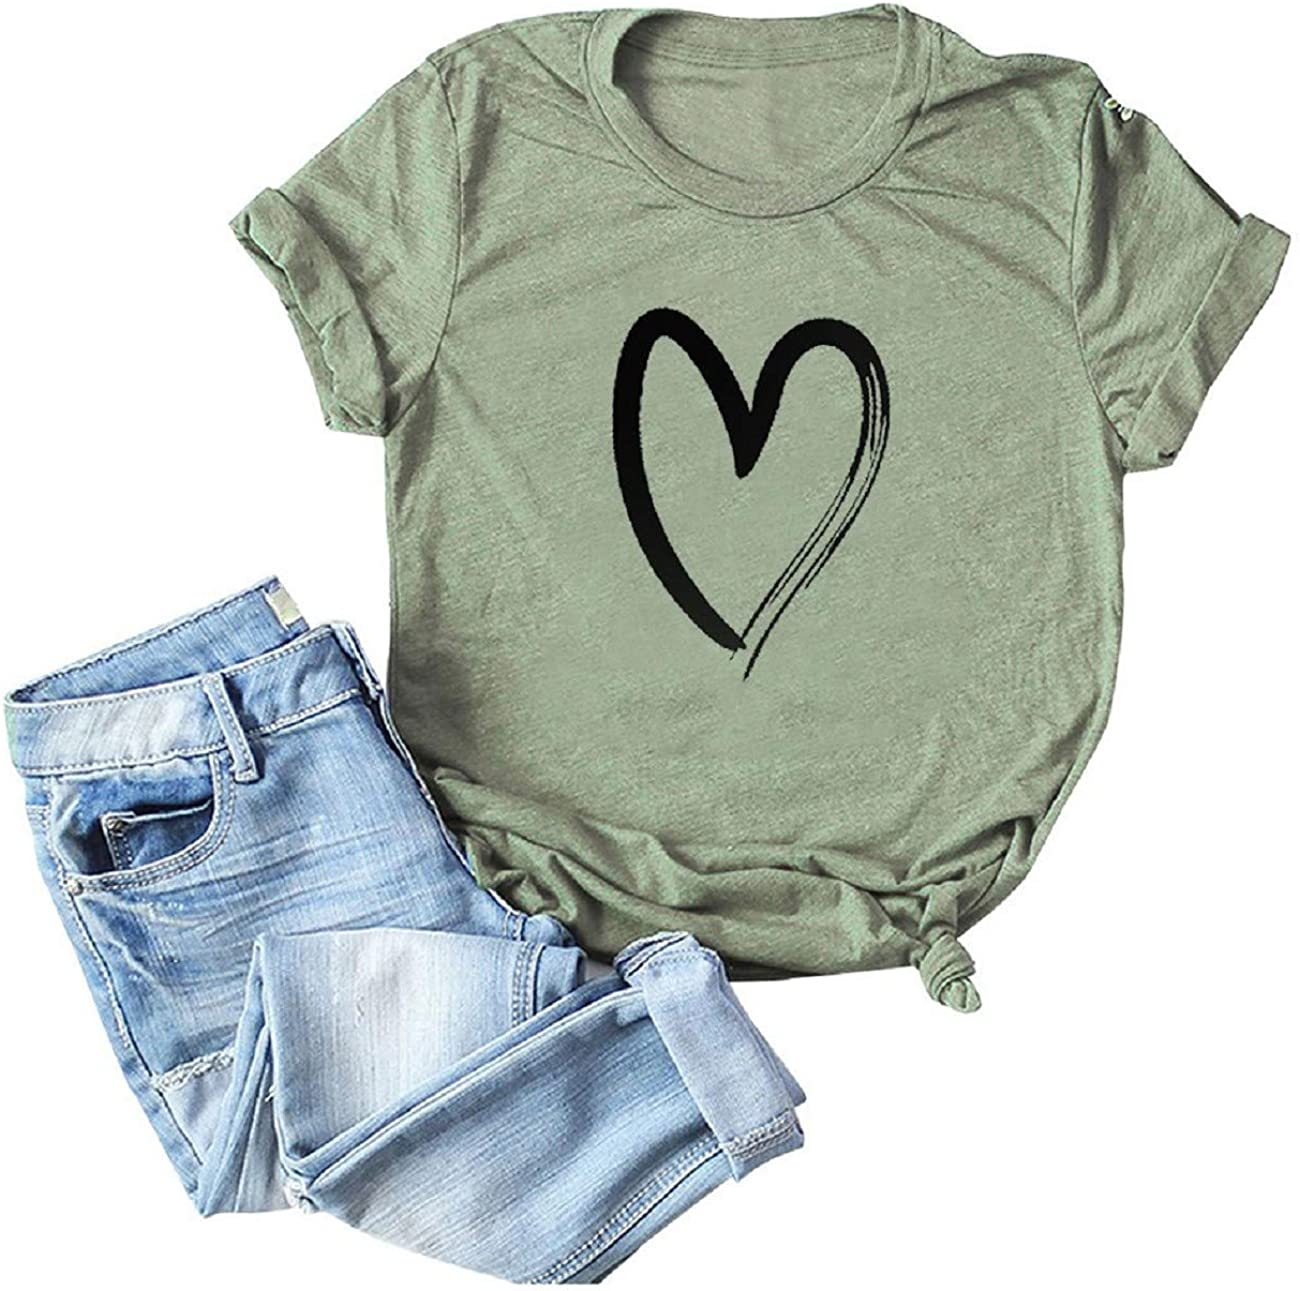 FAPIZI Women Summer Short Sleeve T Shirt Casual O Neck Heart Printed Loose Solid Color Blouse Plus Size Tops Pullover